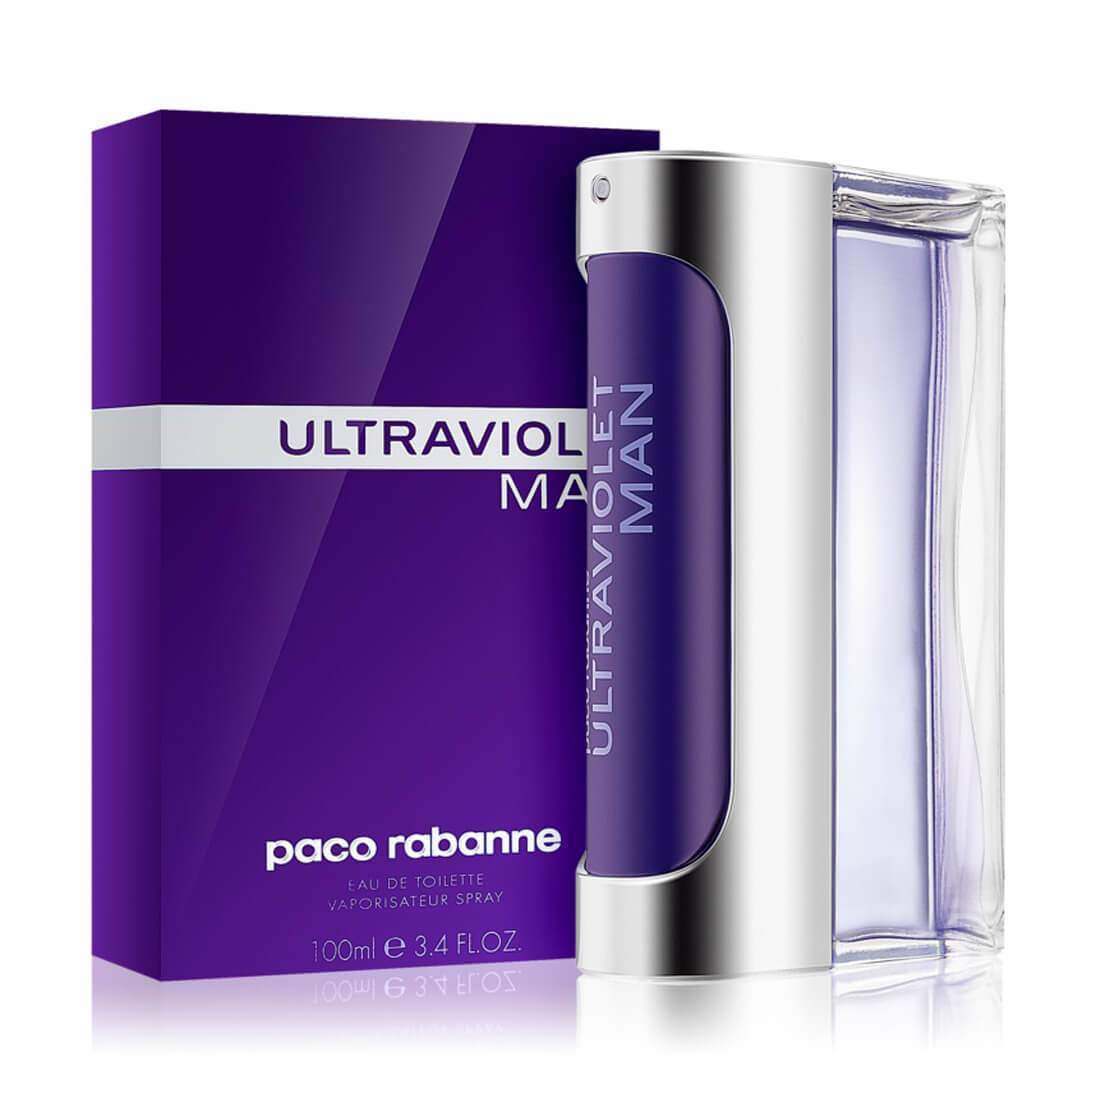 Ultraviolet EDT Men